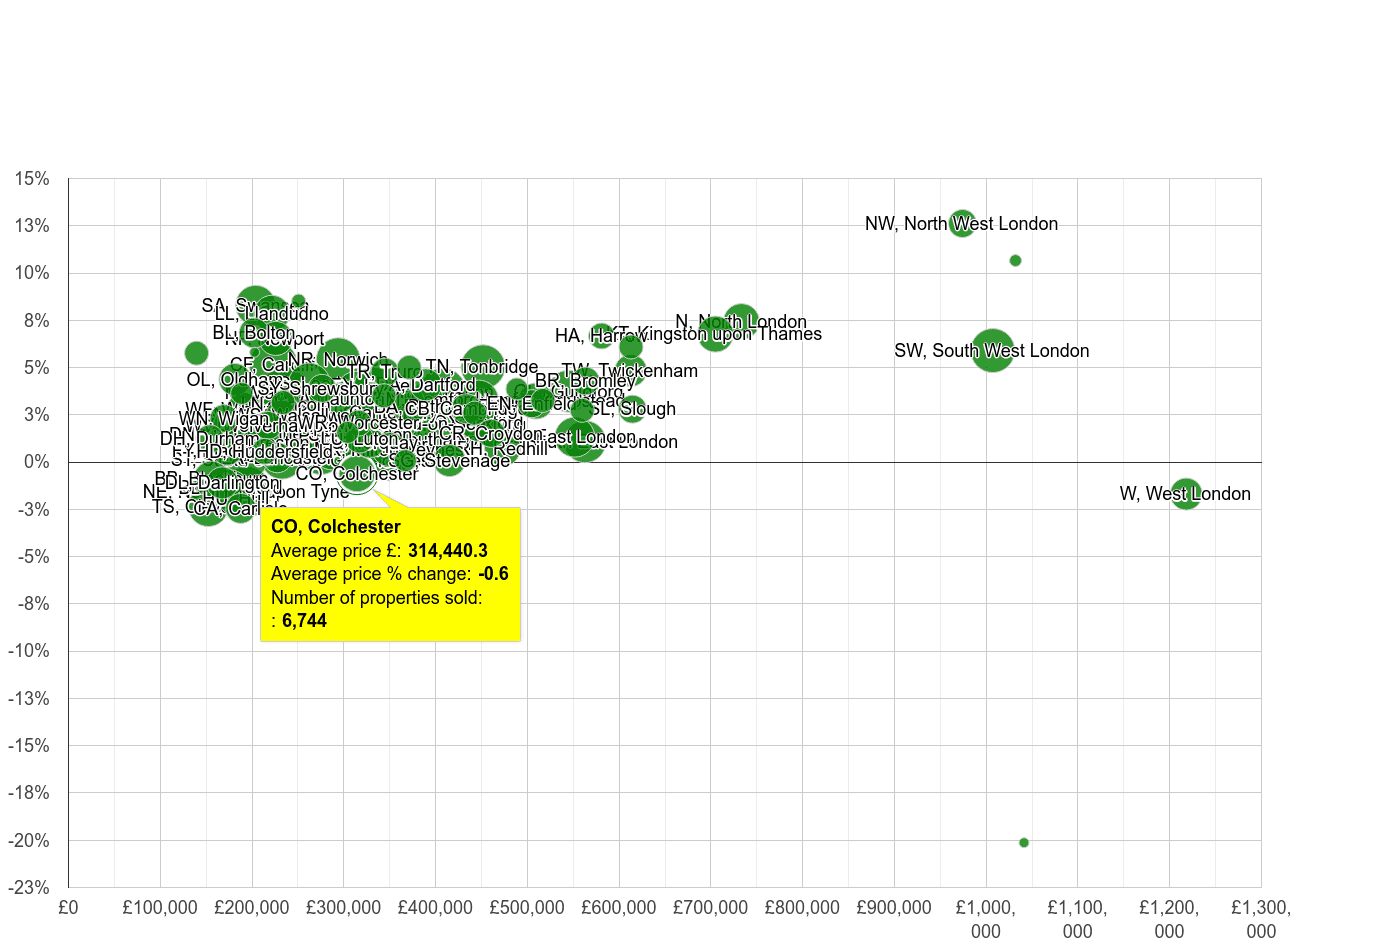 Colchester house prices compared to other areas